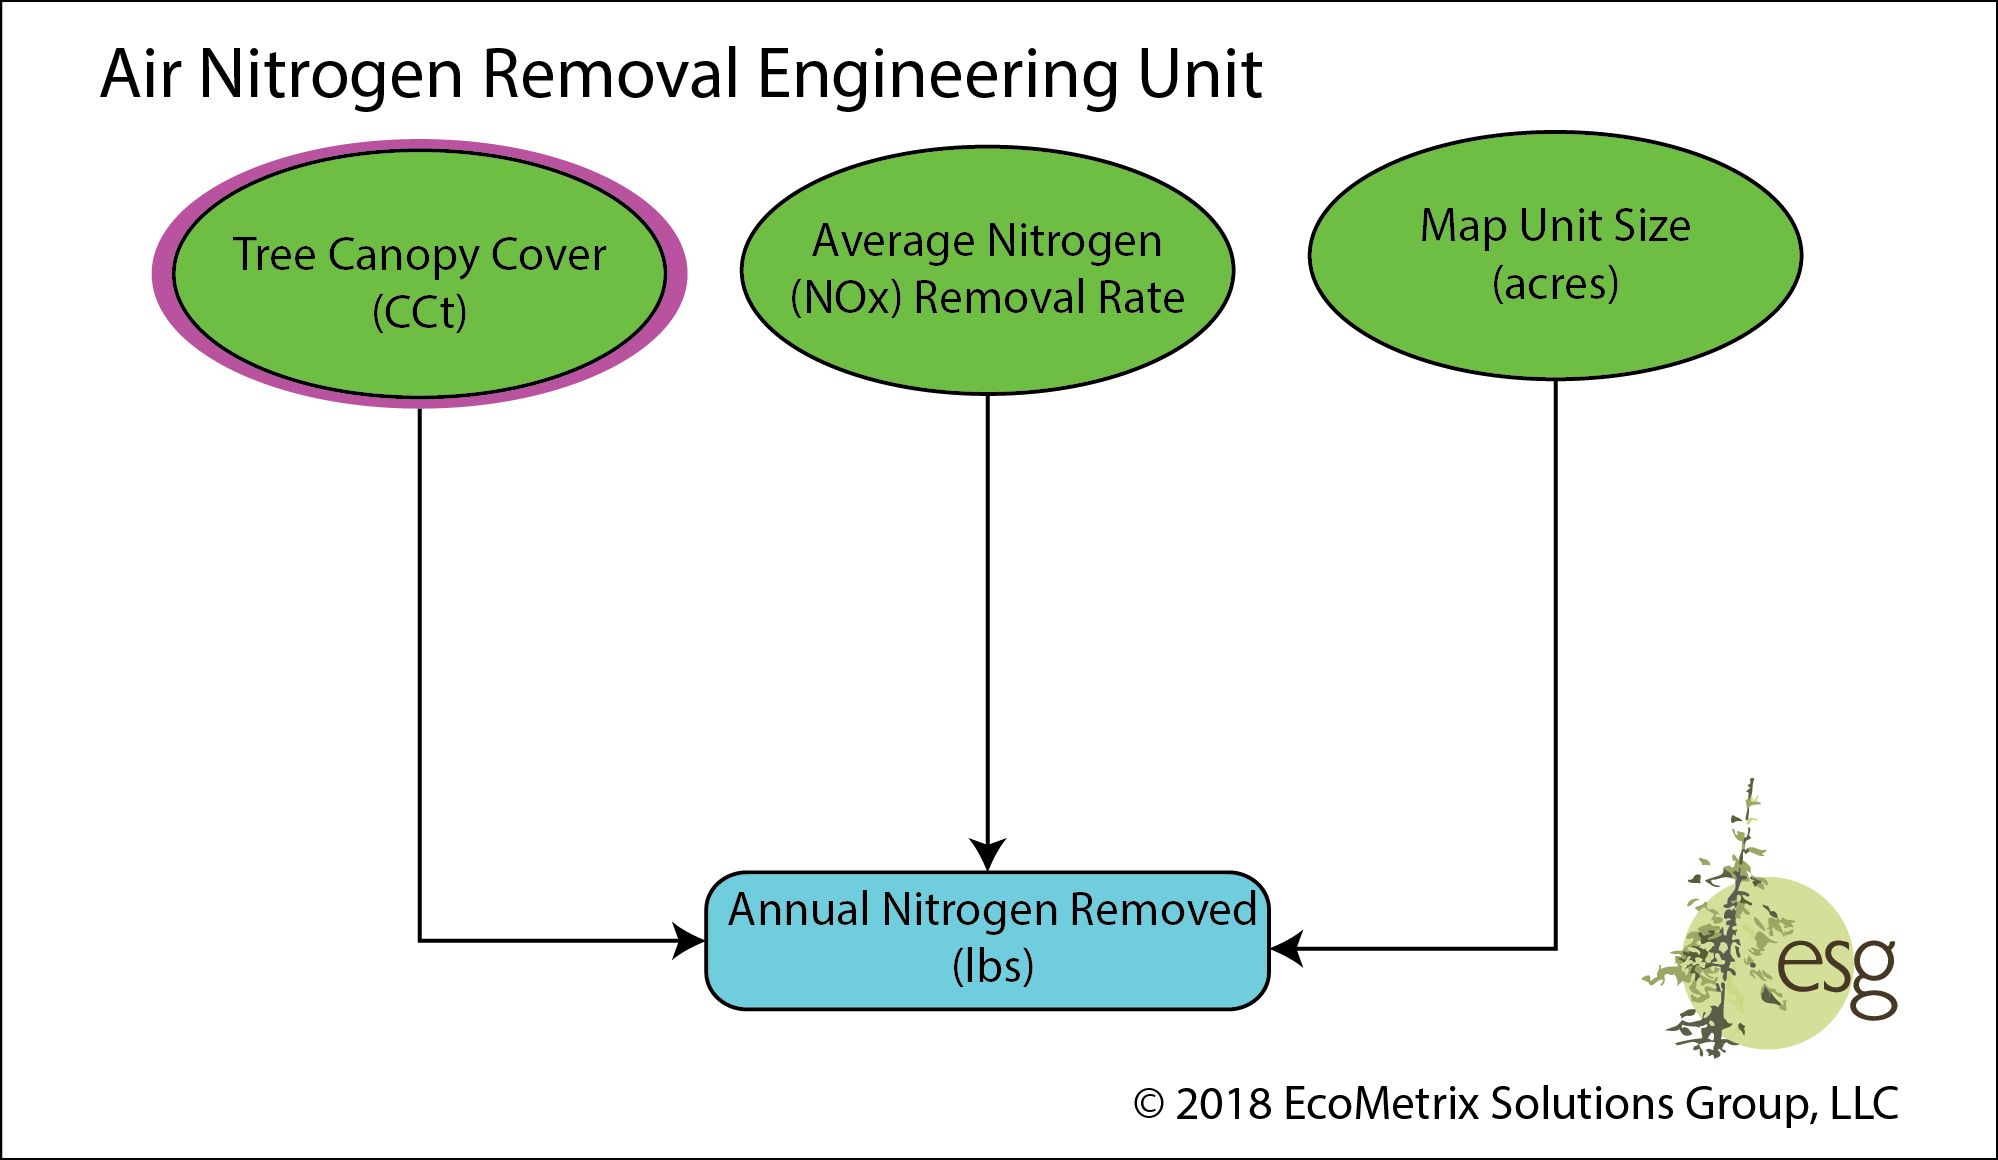 The potential for a map unit to sequester airborne nitrogen‐oxygen compounds through interaction with the vegetative canopy cover of trees.